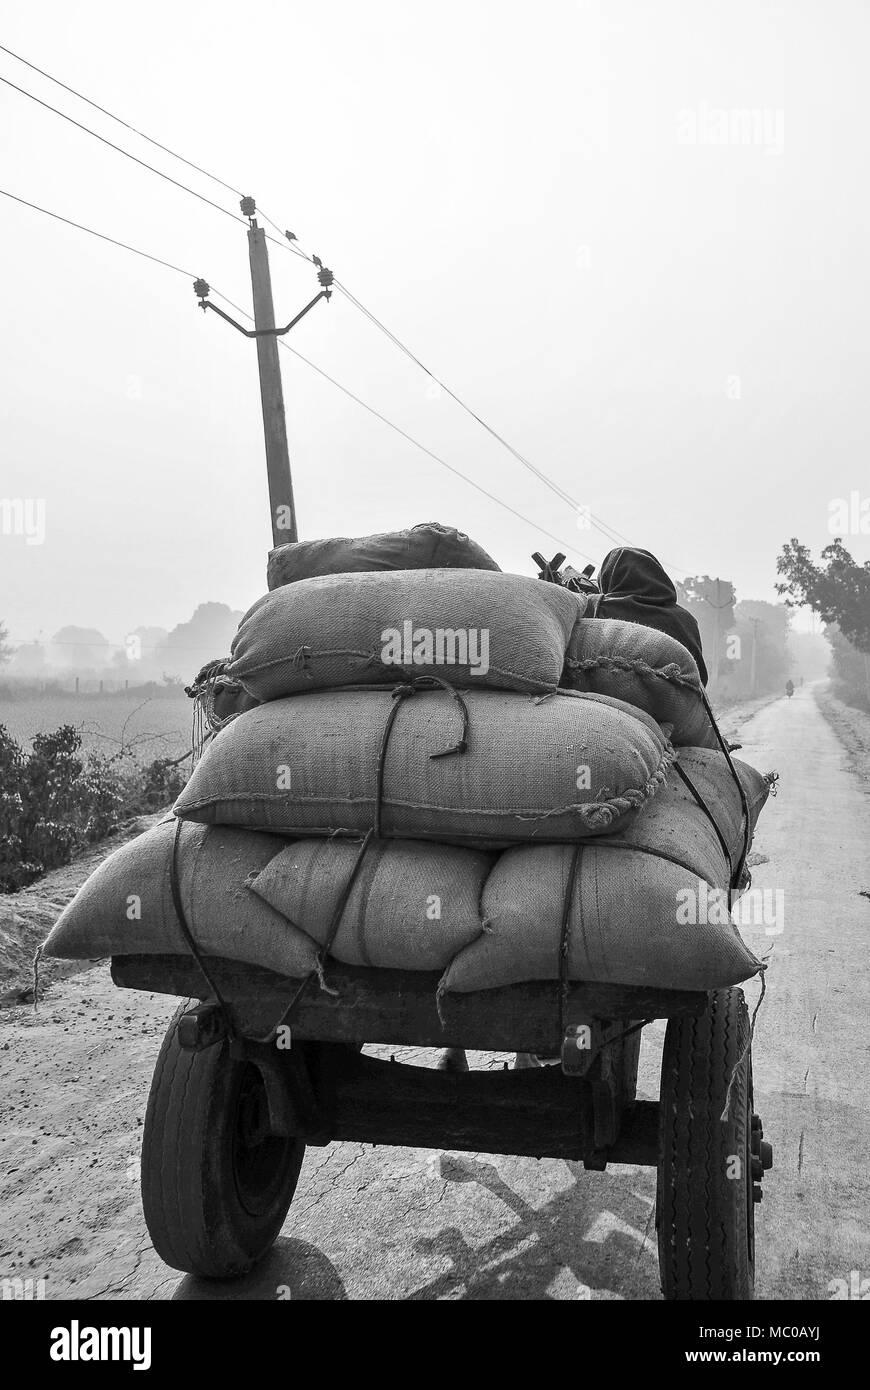 Black and white image of man driving old cart with rice sacks piled high, on a dusty road - Rajasthan, India - Stock Image